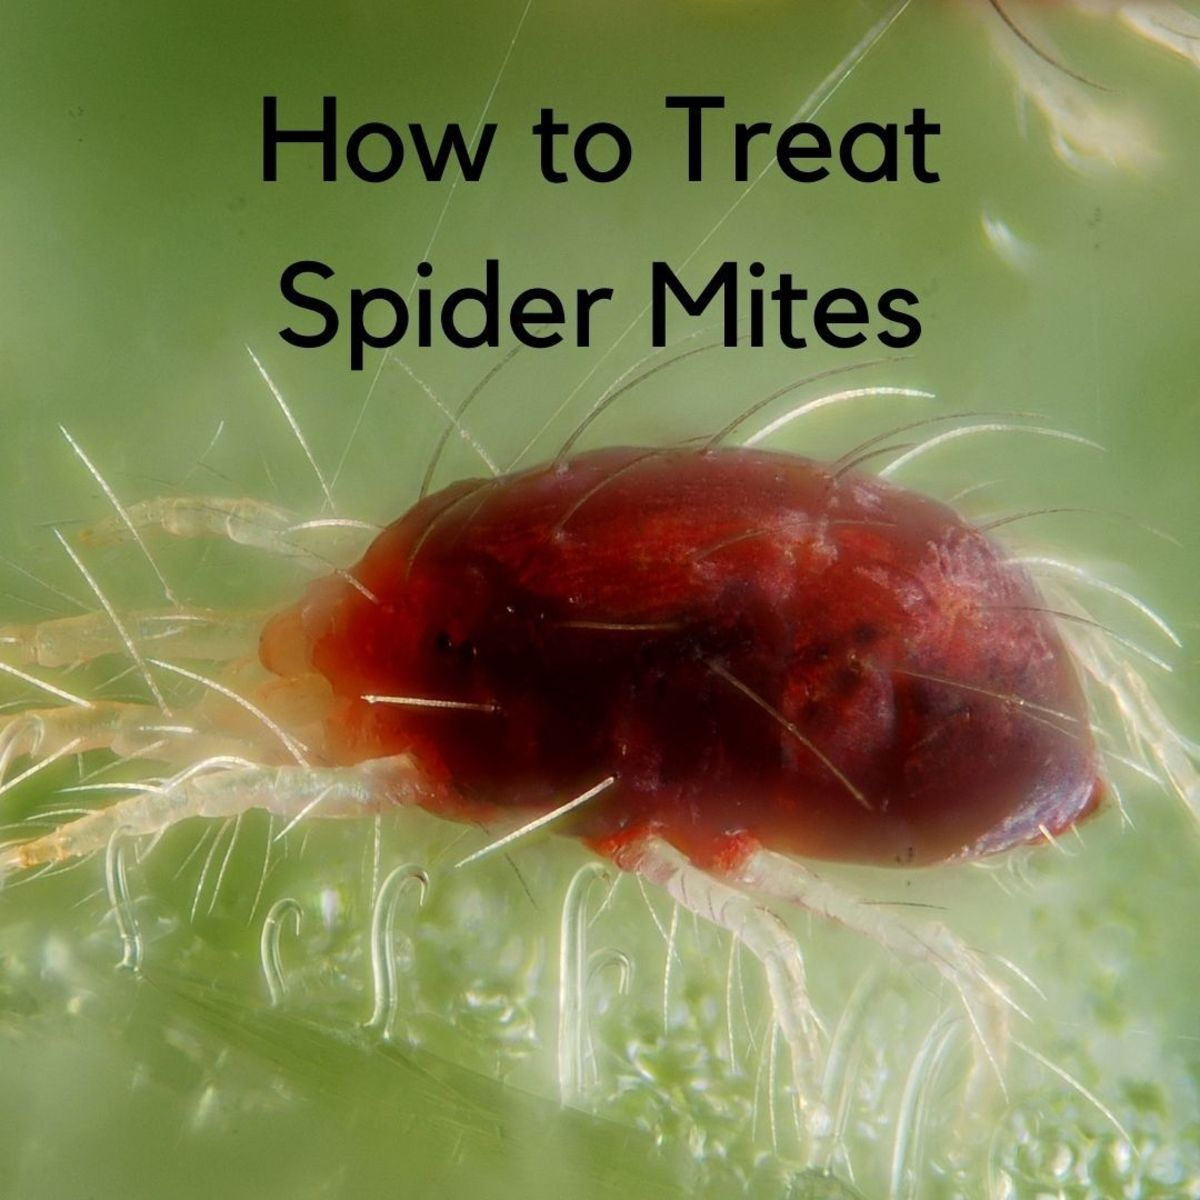 The spider mite is a very tiny insect that has eight legs like a spider and has many of the same characteristics as a spider.